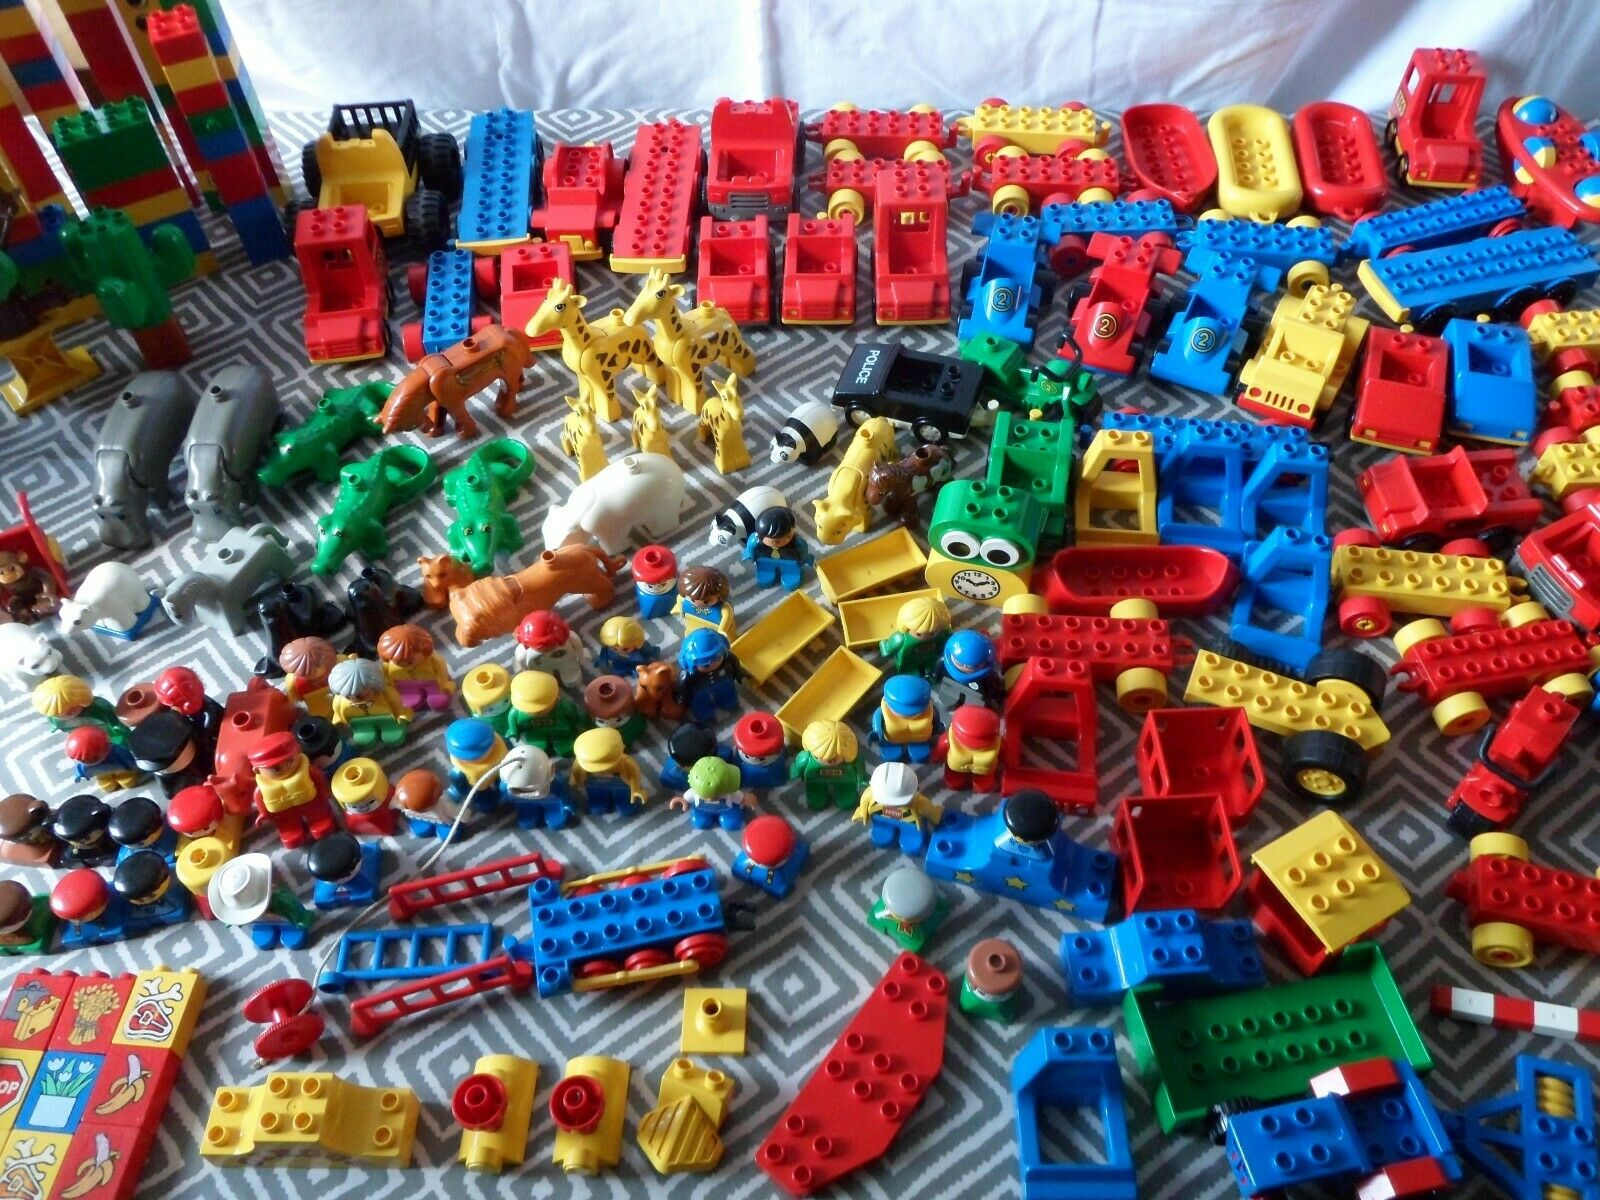 HUGE LOT OF VINTAGE LEGO DUPLO ANIMALS ZOO CARS VEHICLES MUST SEE RARE PIECES